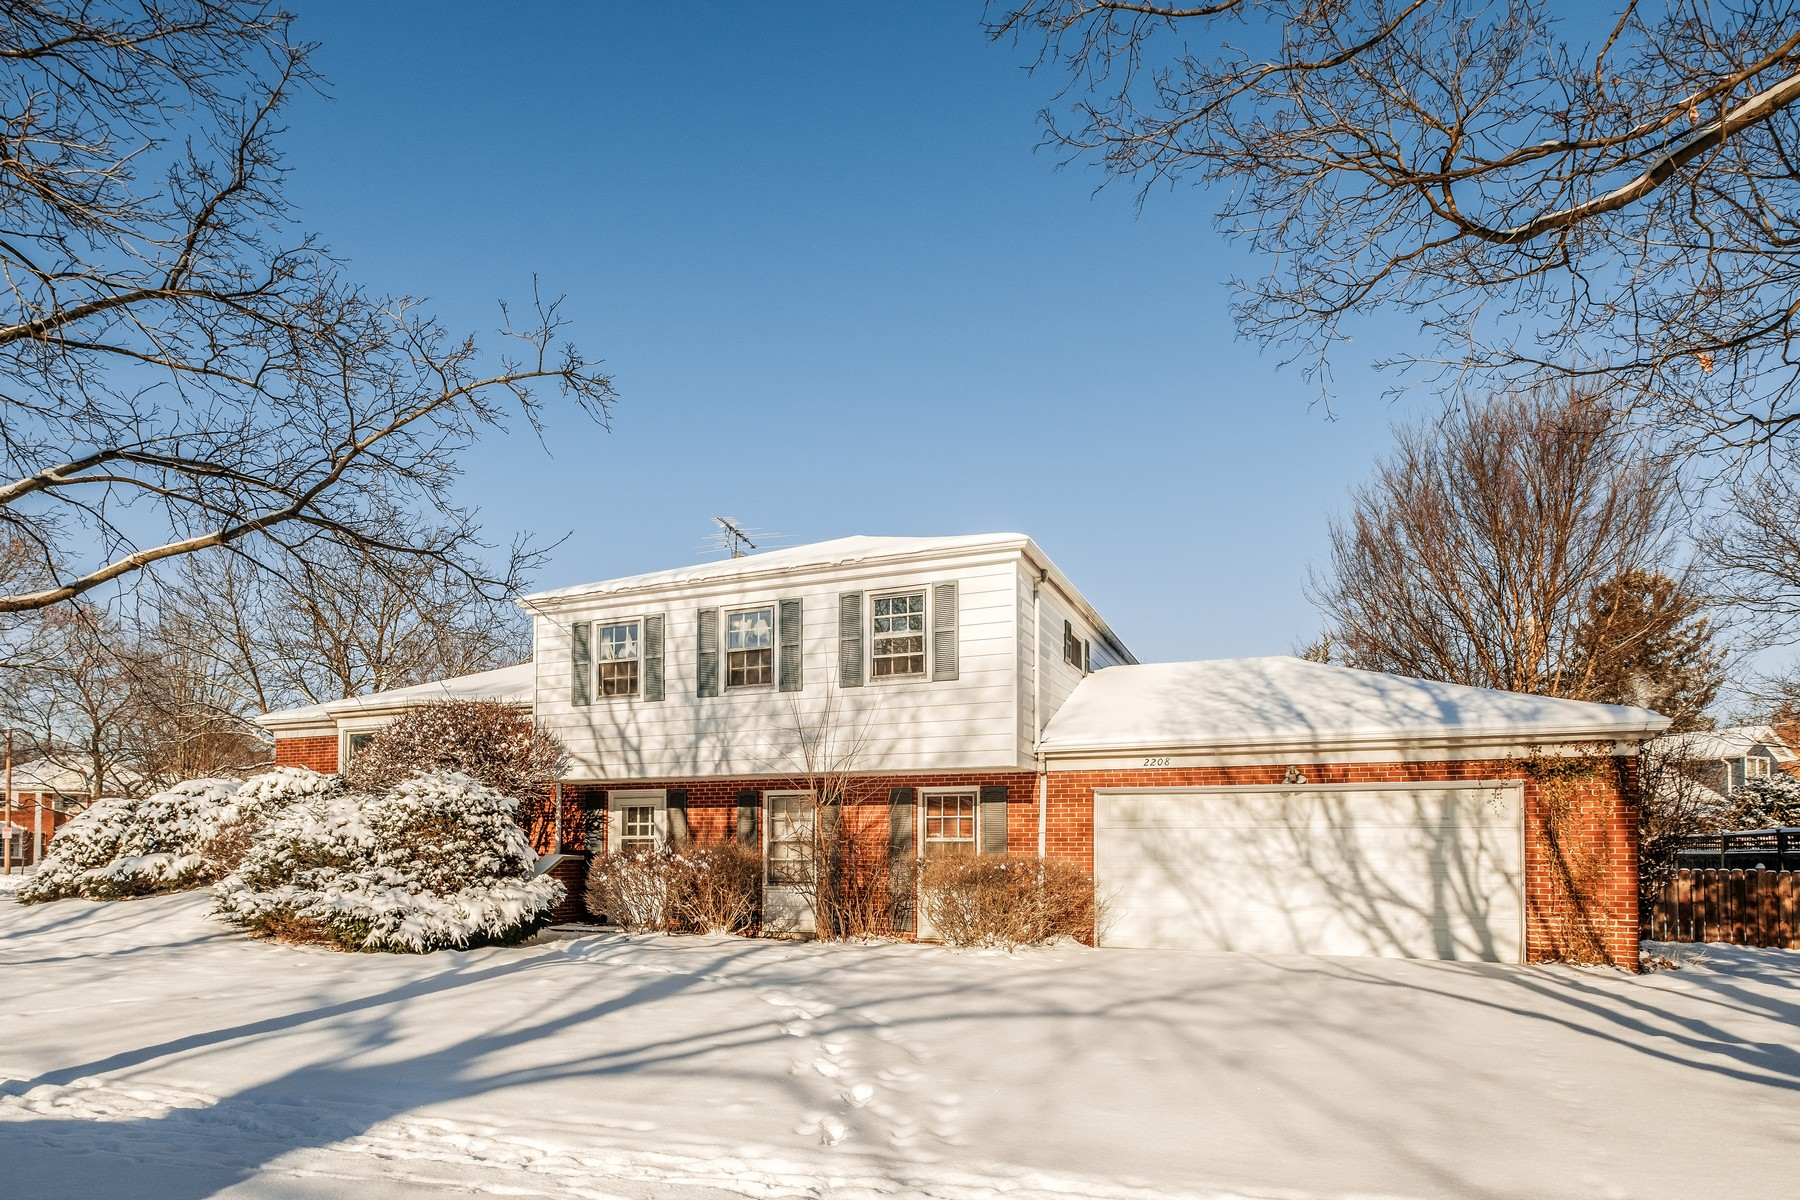 Casa Unifamiliar por un Venta en Specious Wilmette Split Level Home 2208 Crestview Lane, Wilmette, Illinois, 60091 Estados Unidos